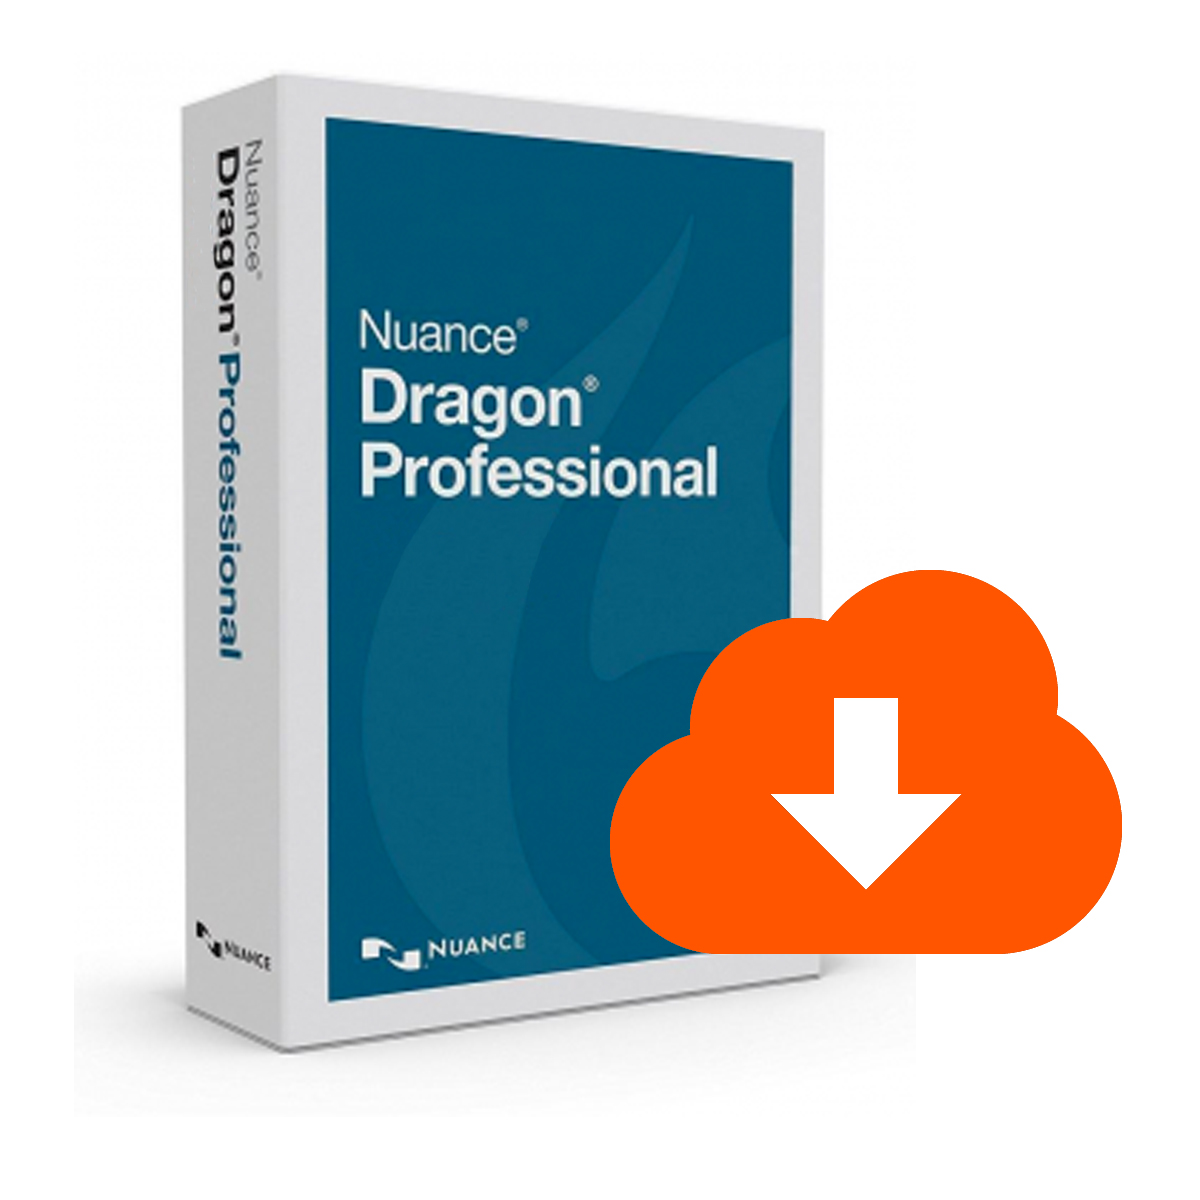 Nuance Dragon NaturallySpeaking Premium 13.0 Upgrade English ESN Download